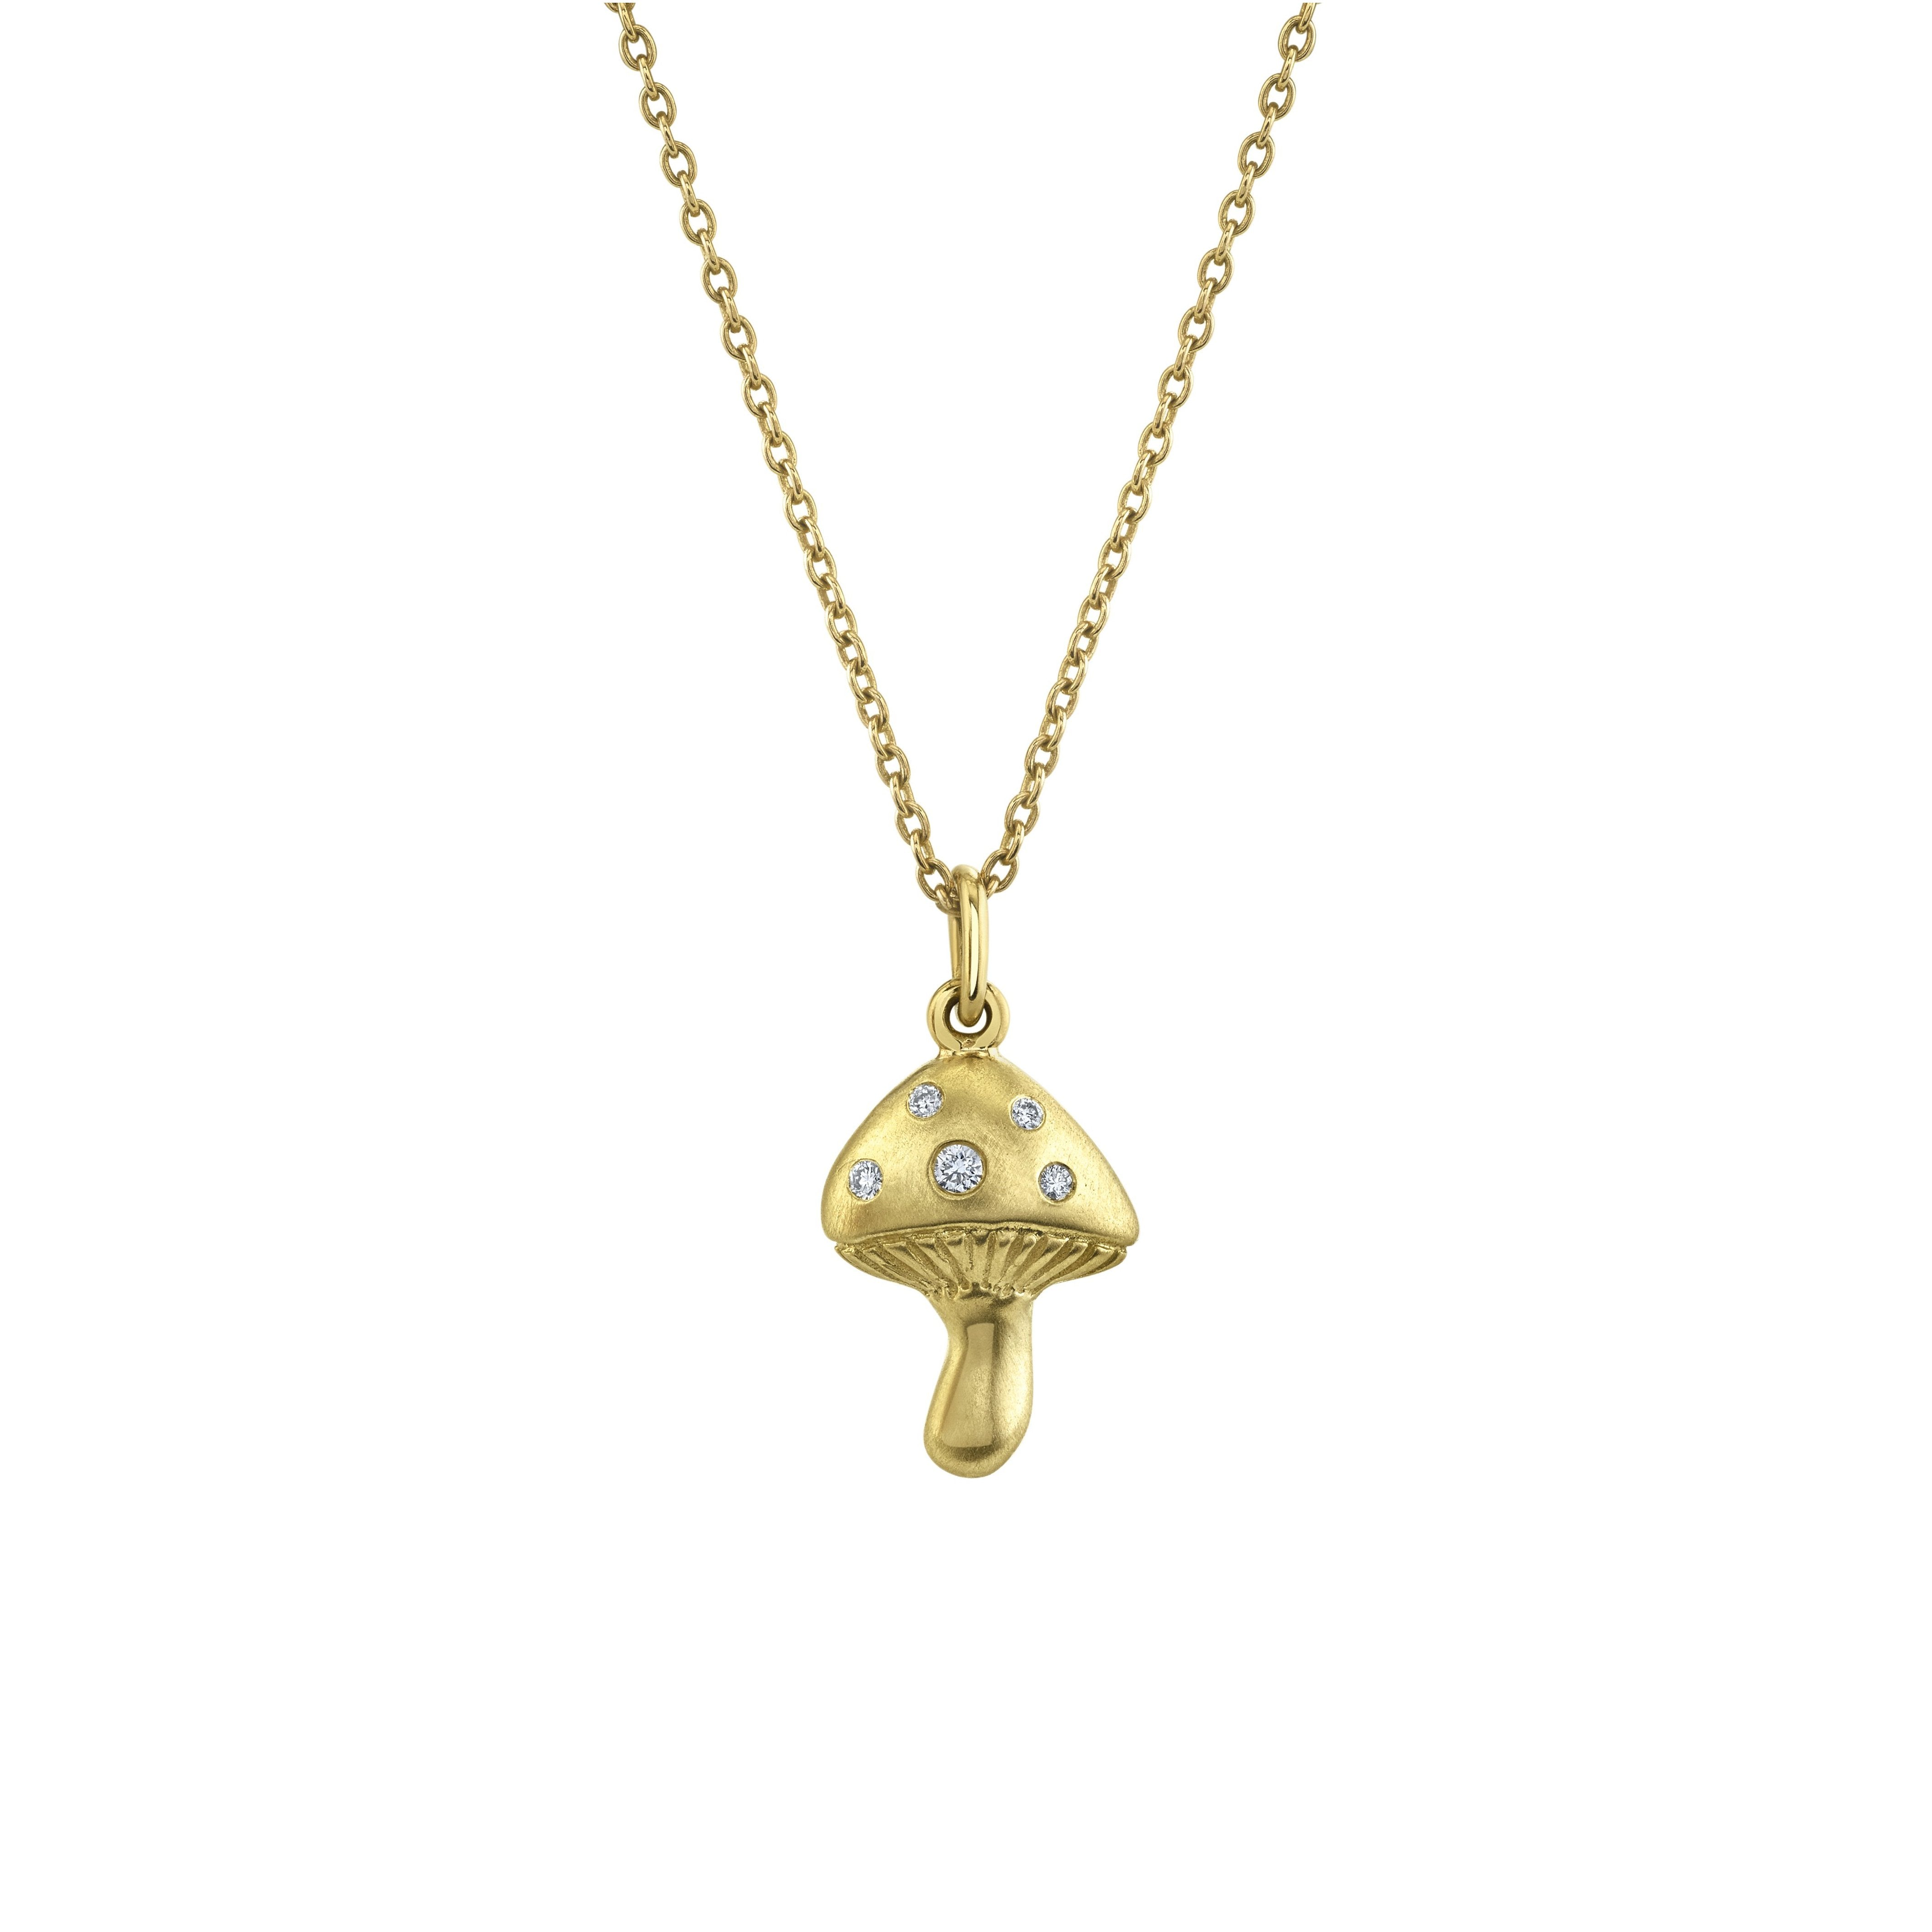 NEW! Mini Magic Mushroom Necklace with Diamonds